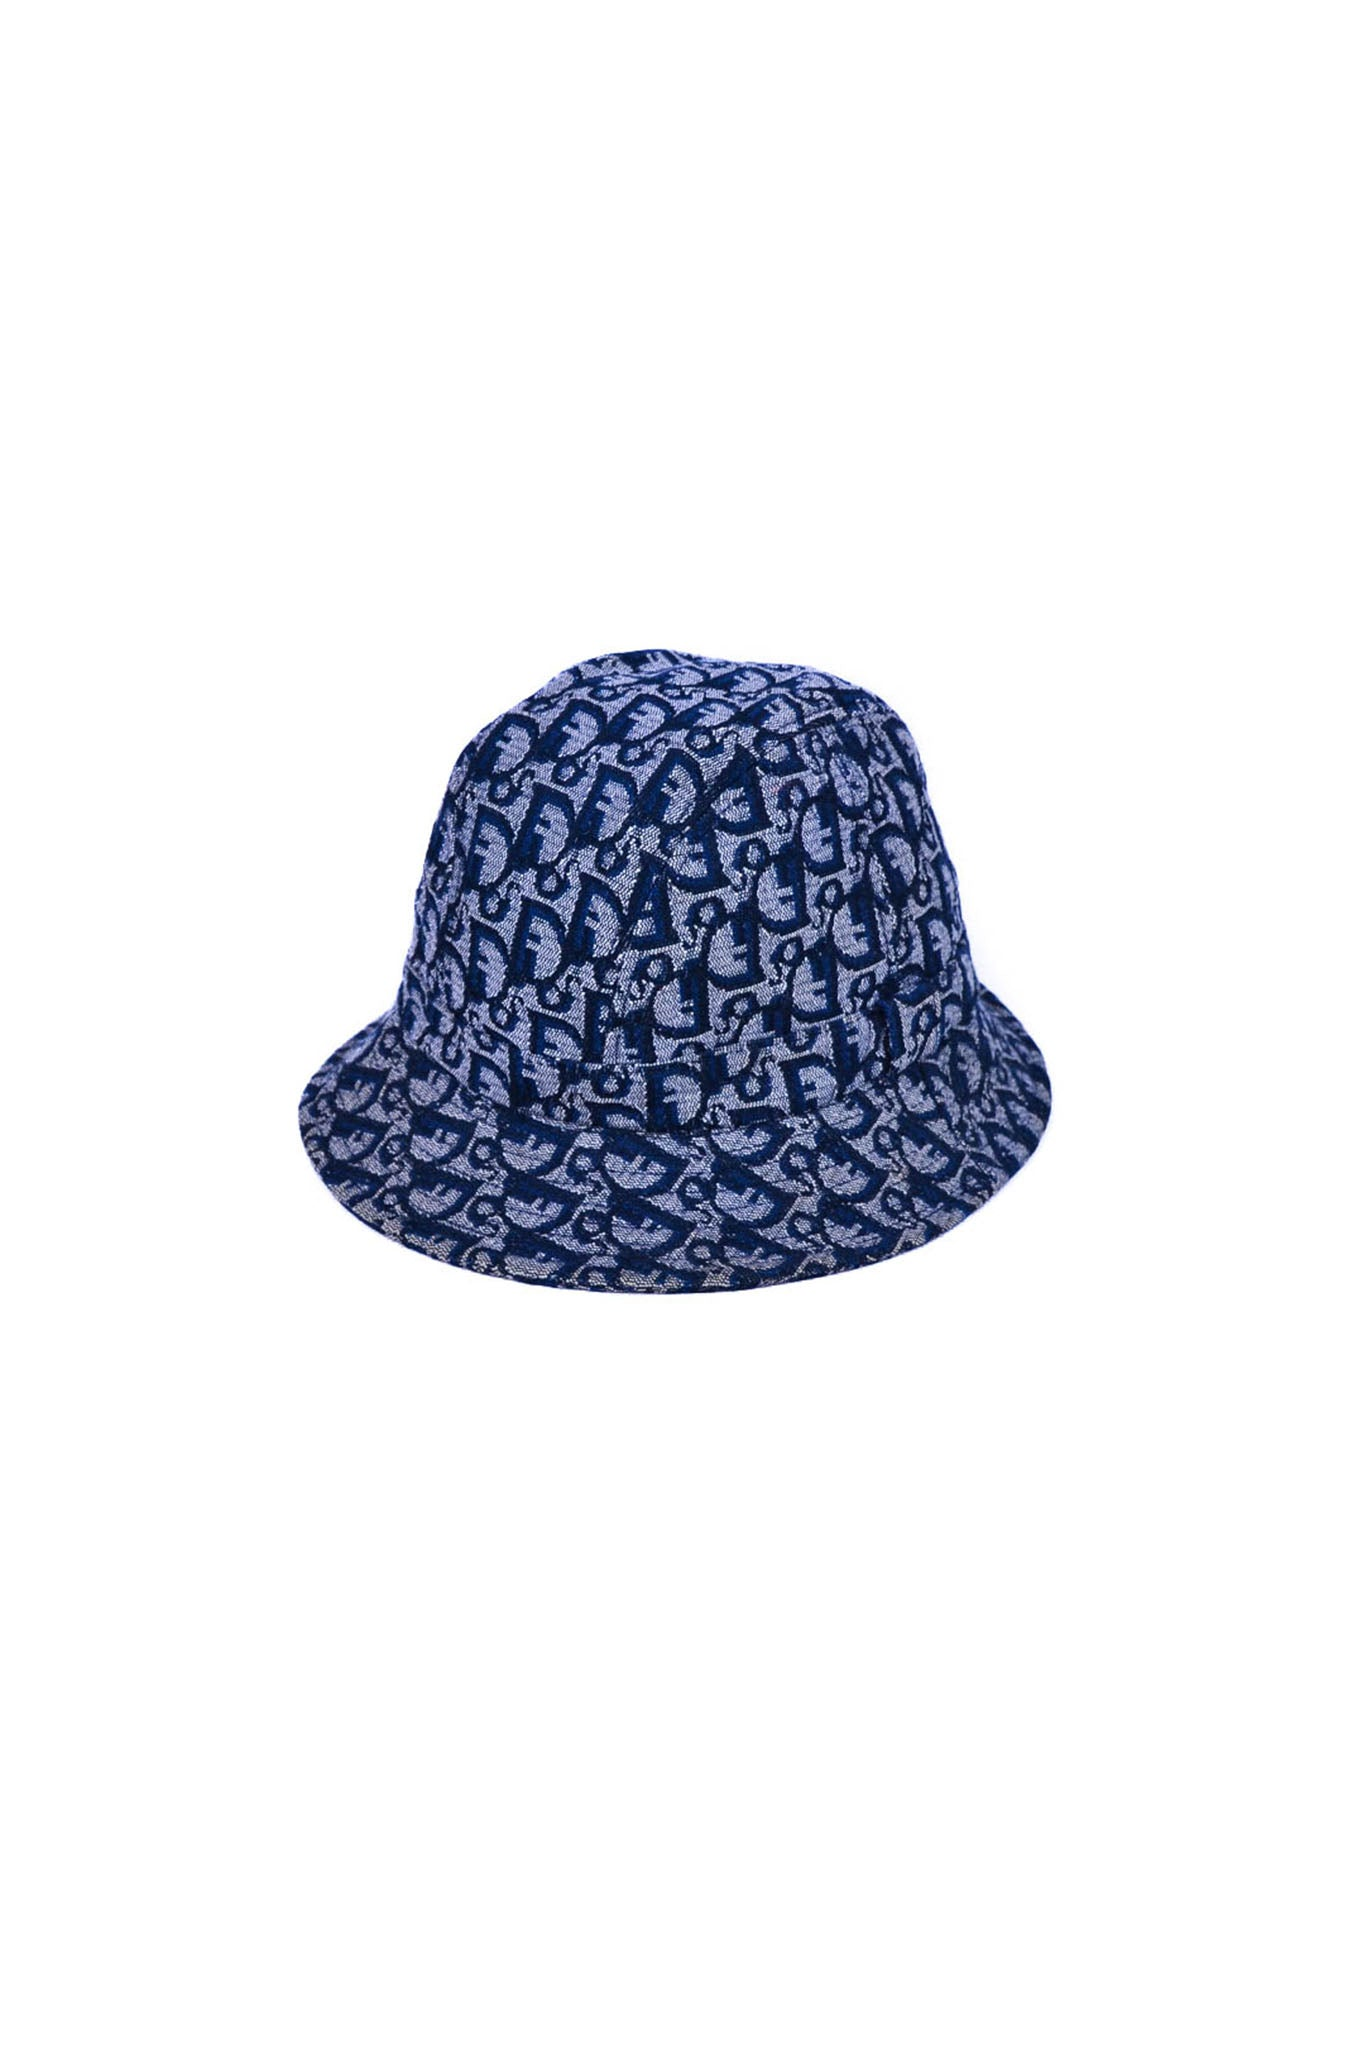 Dior Monogram Bucket Hat – AVERAGE LOCAL 28048903e92